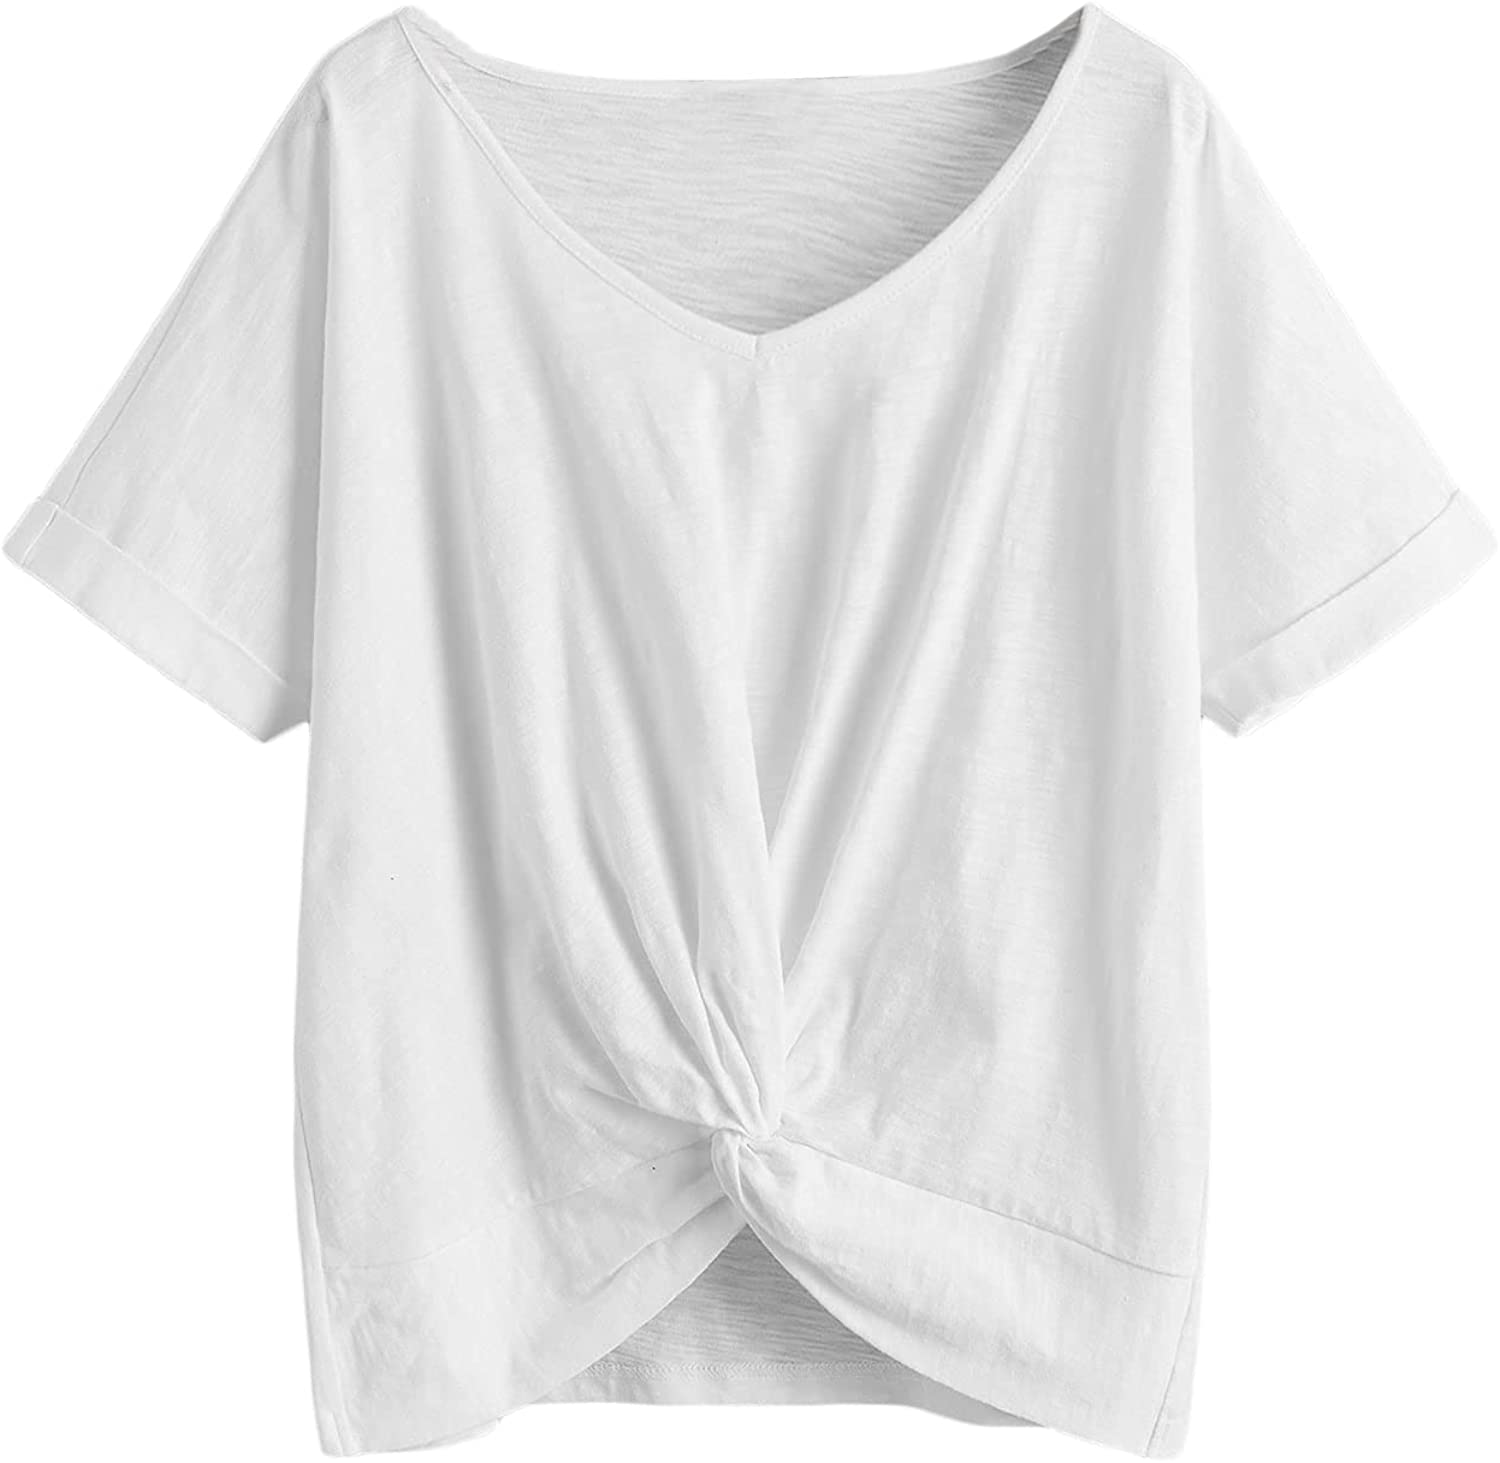 Milumia Women Plus Size Twist Front V Neck Tee Cuffed Short Sleeve Solid T Shirt Tops